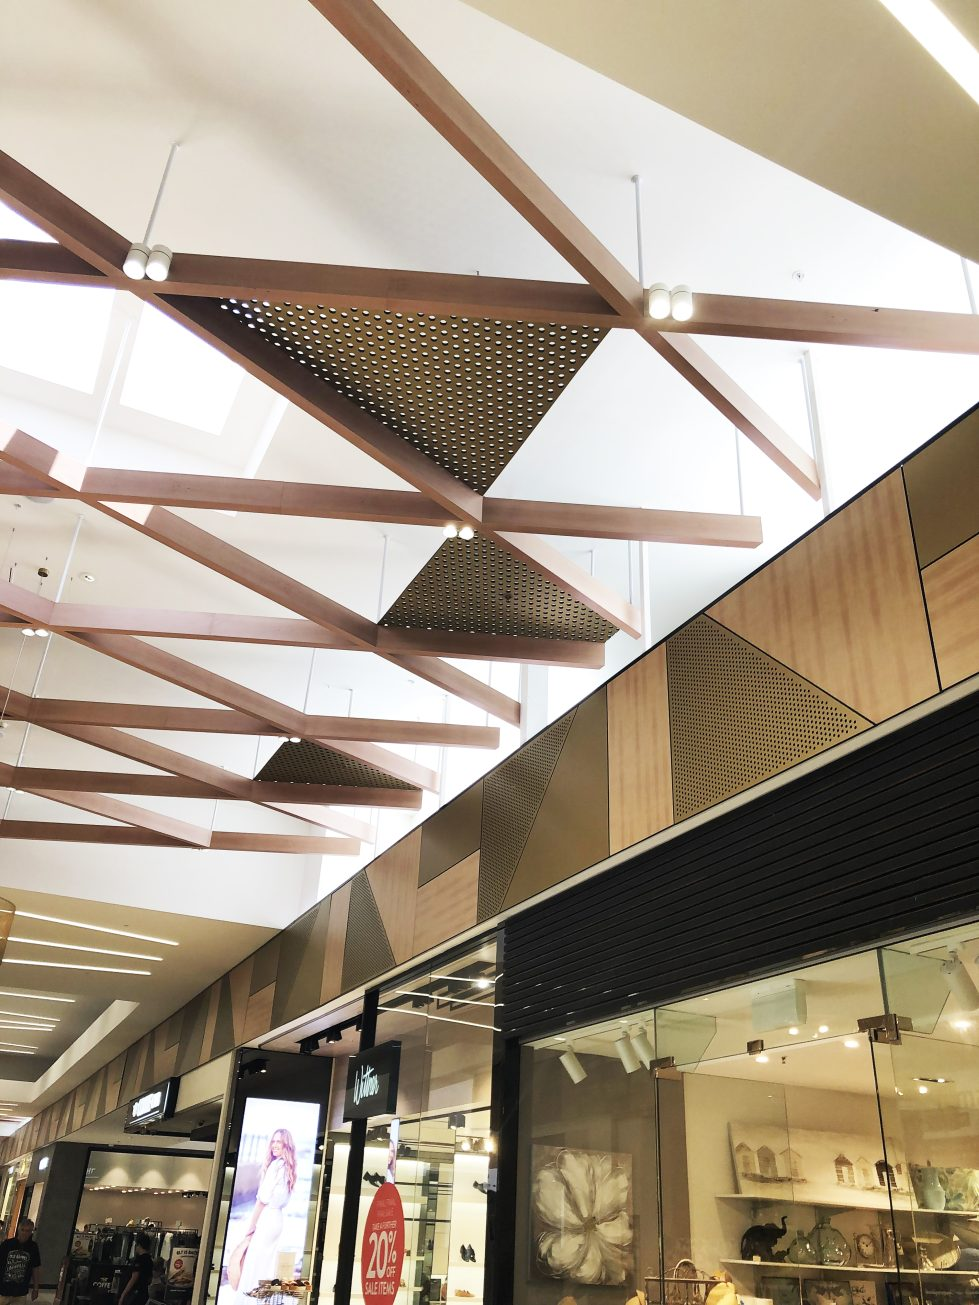 design clarity, integrated ceiling system, bespoke design, suspended ceiling, lighting, acoustic panelling design, cool interior, great interior details